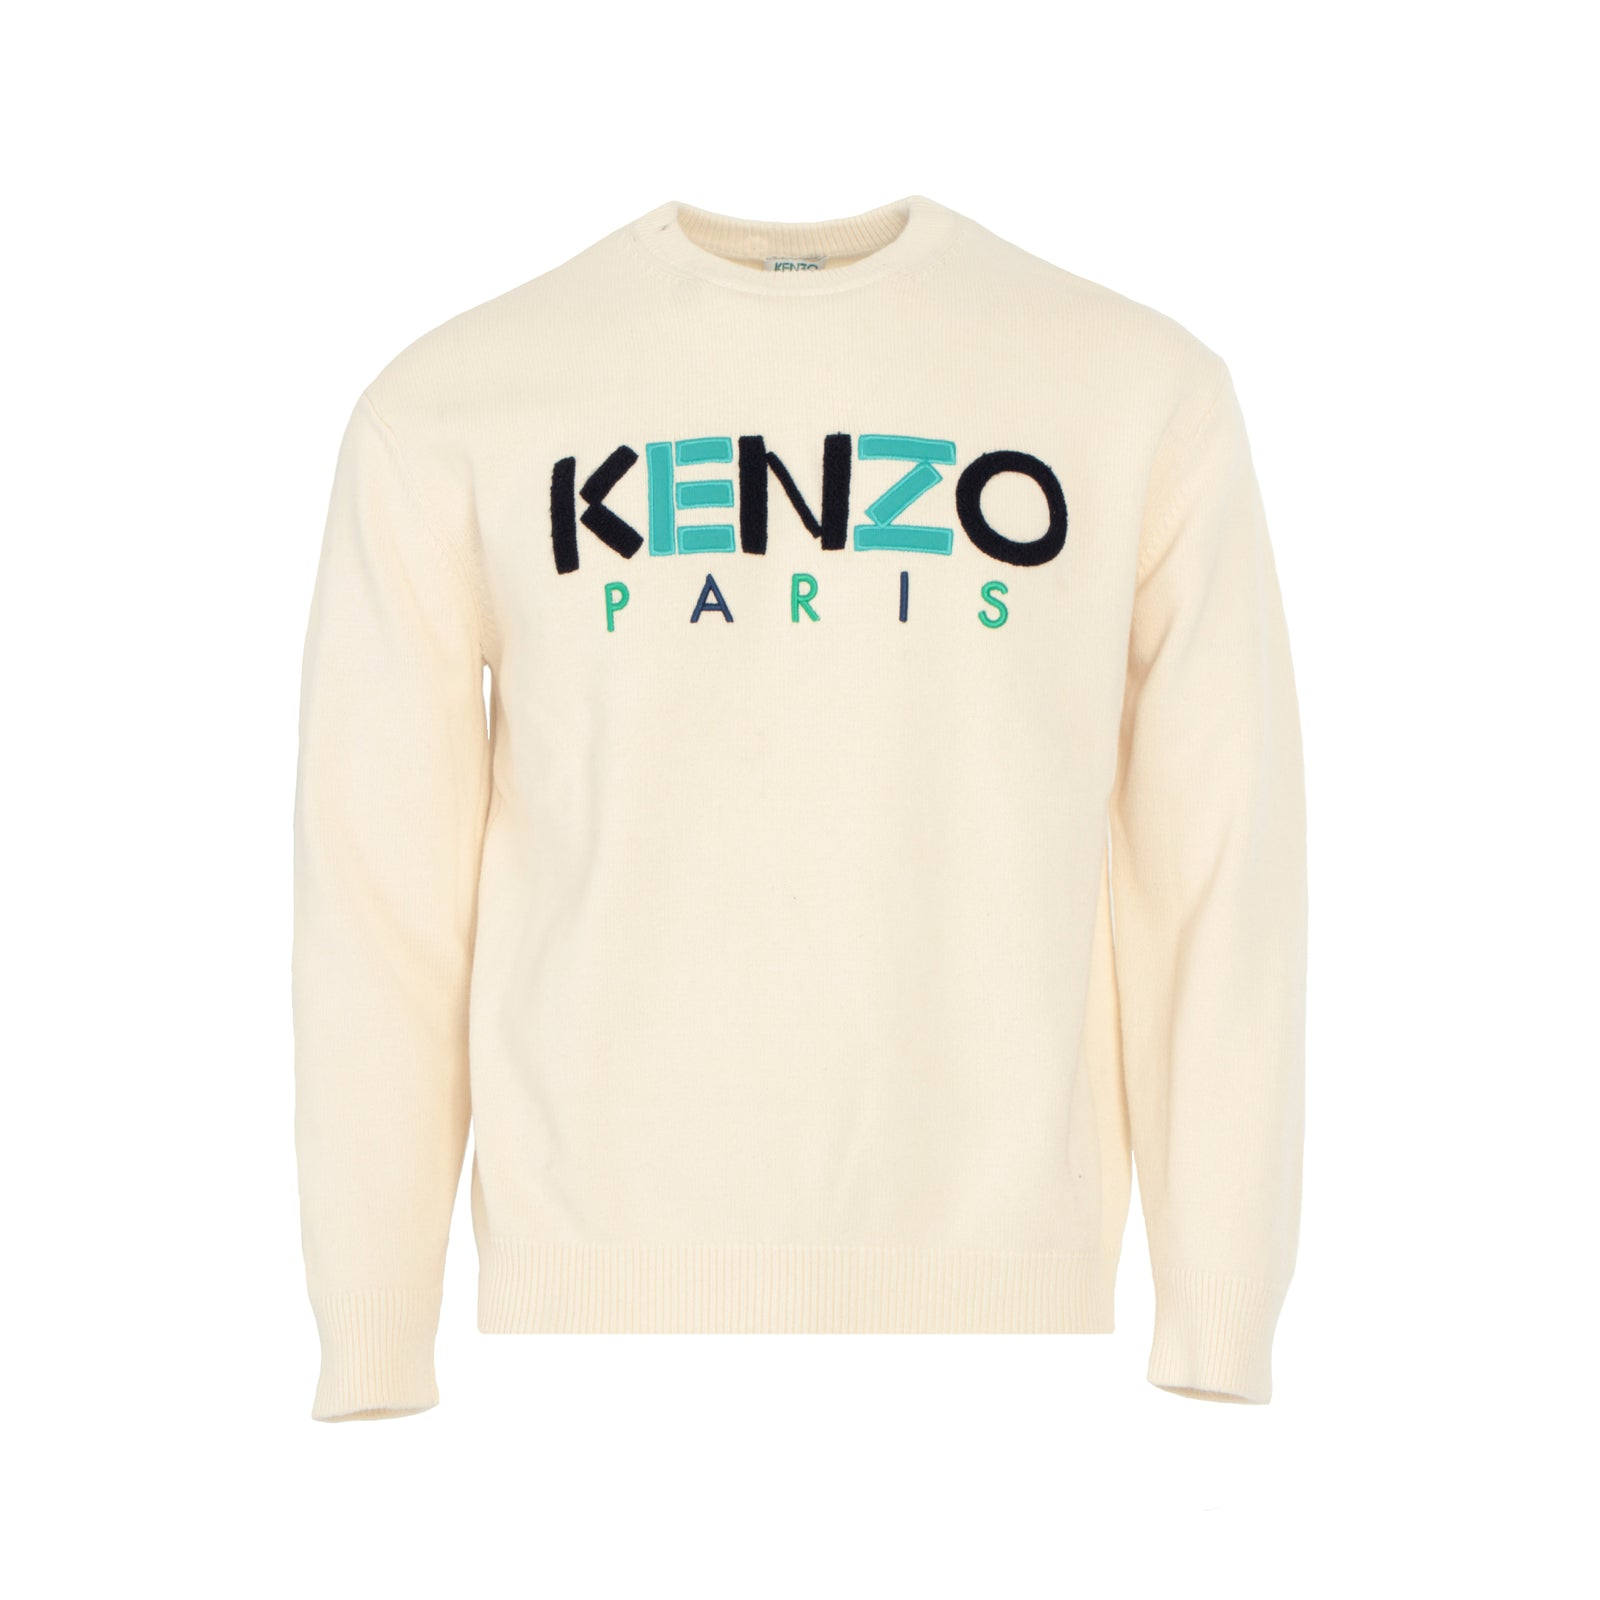 KENZO Paris Wool Men's Beige Jumper